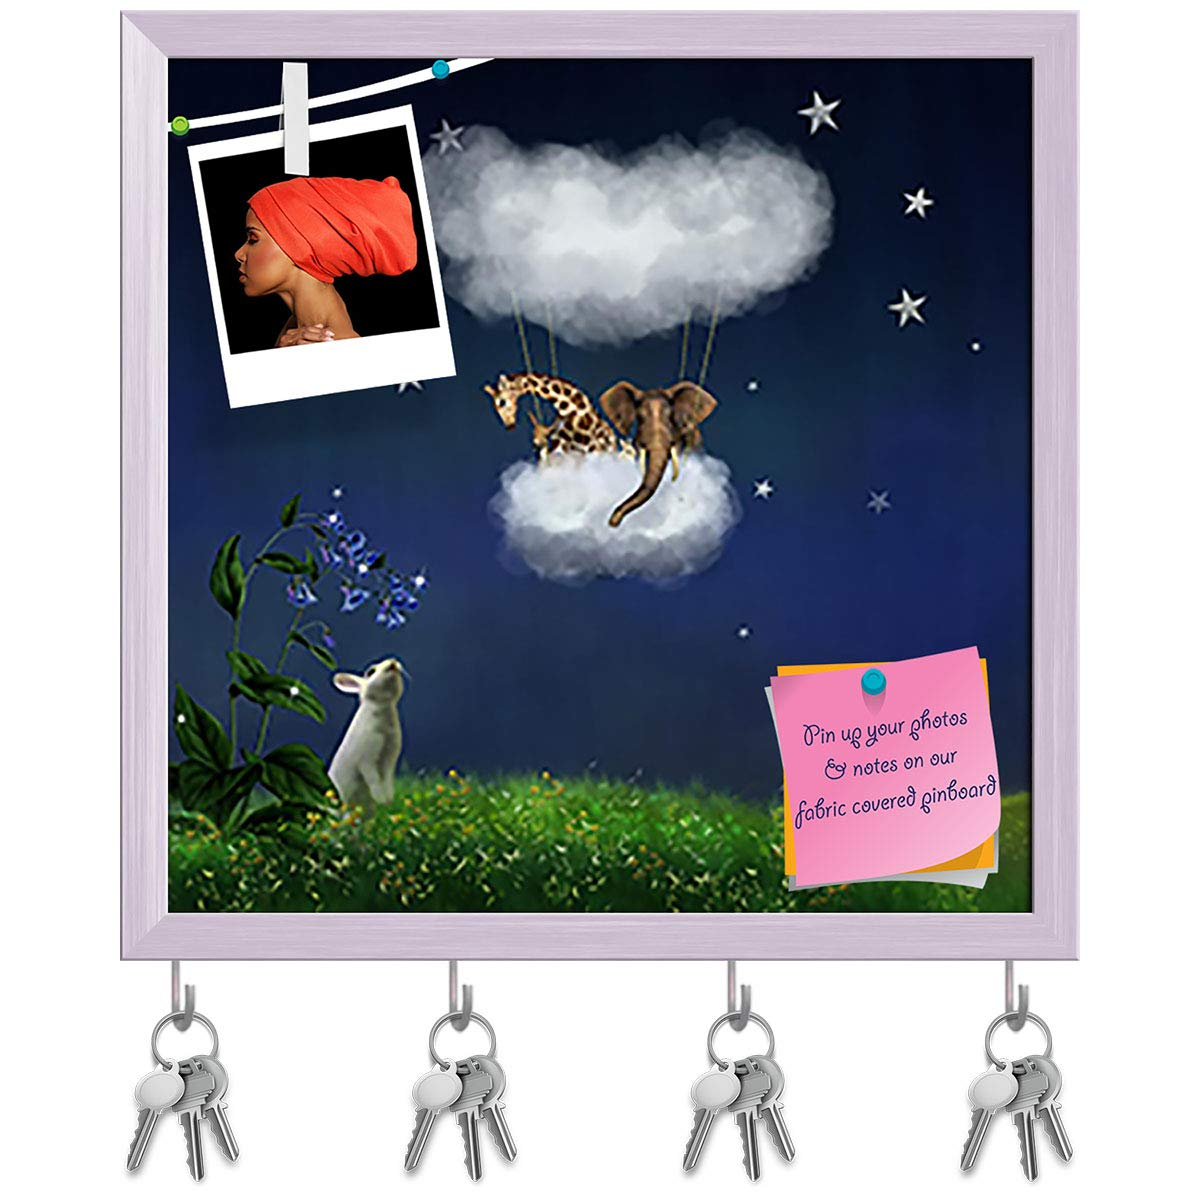 White Frame 16.2inch x 16inch (41.1cms x 40.6cms) Artzfolio Animals Floating in The Clouds Key Holder Hooks   Notice Pin Board   White Frame 16.2 X 16Inch